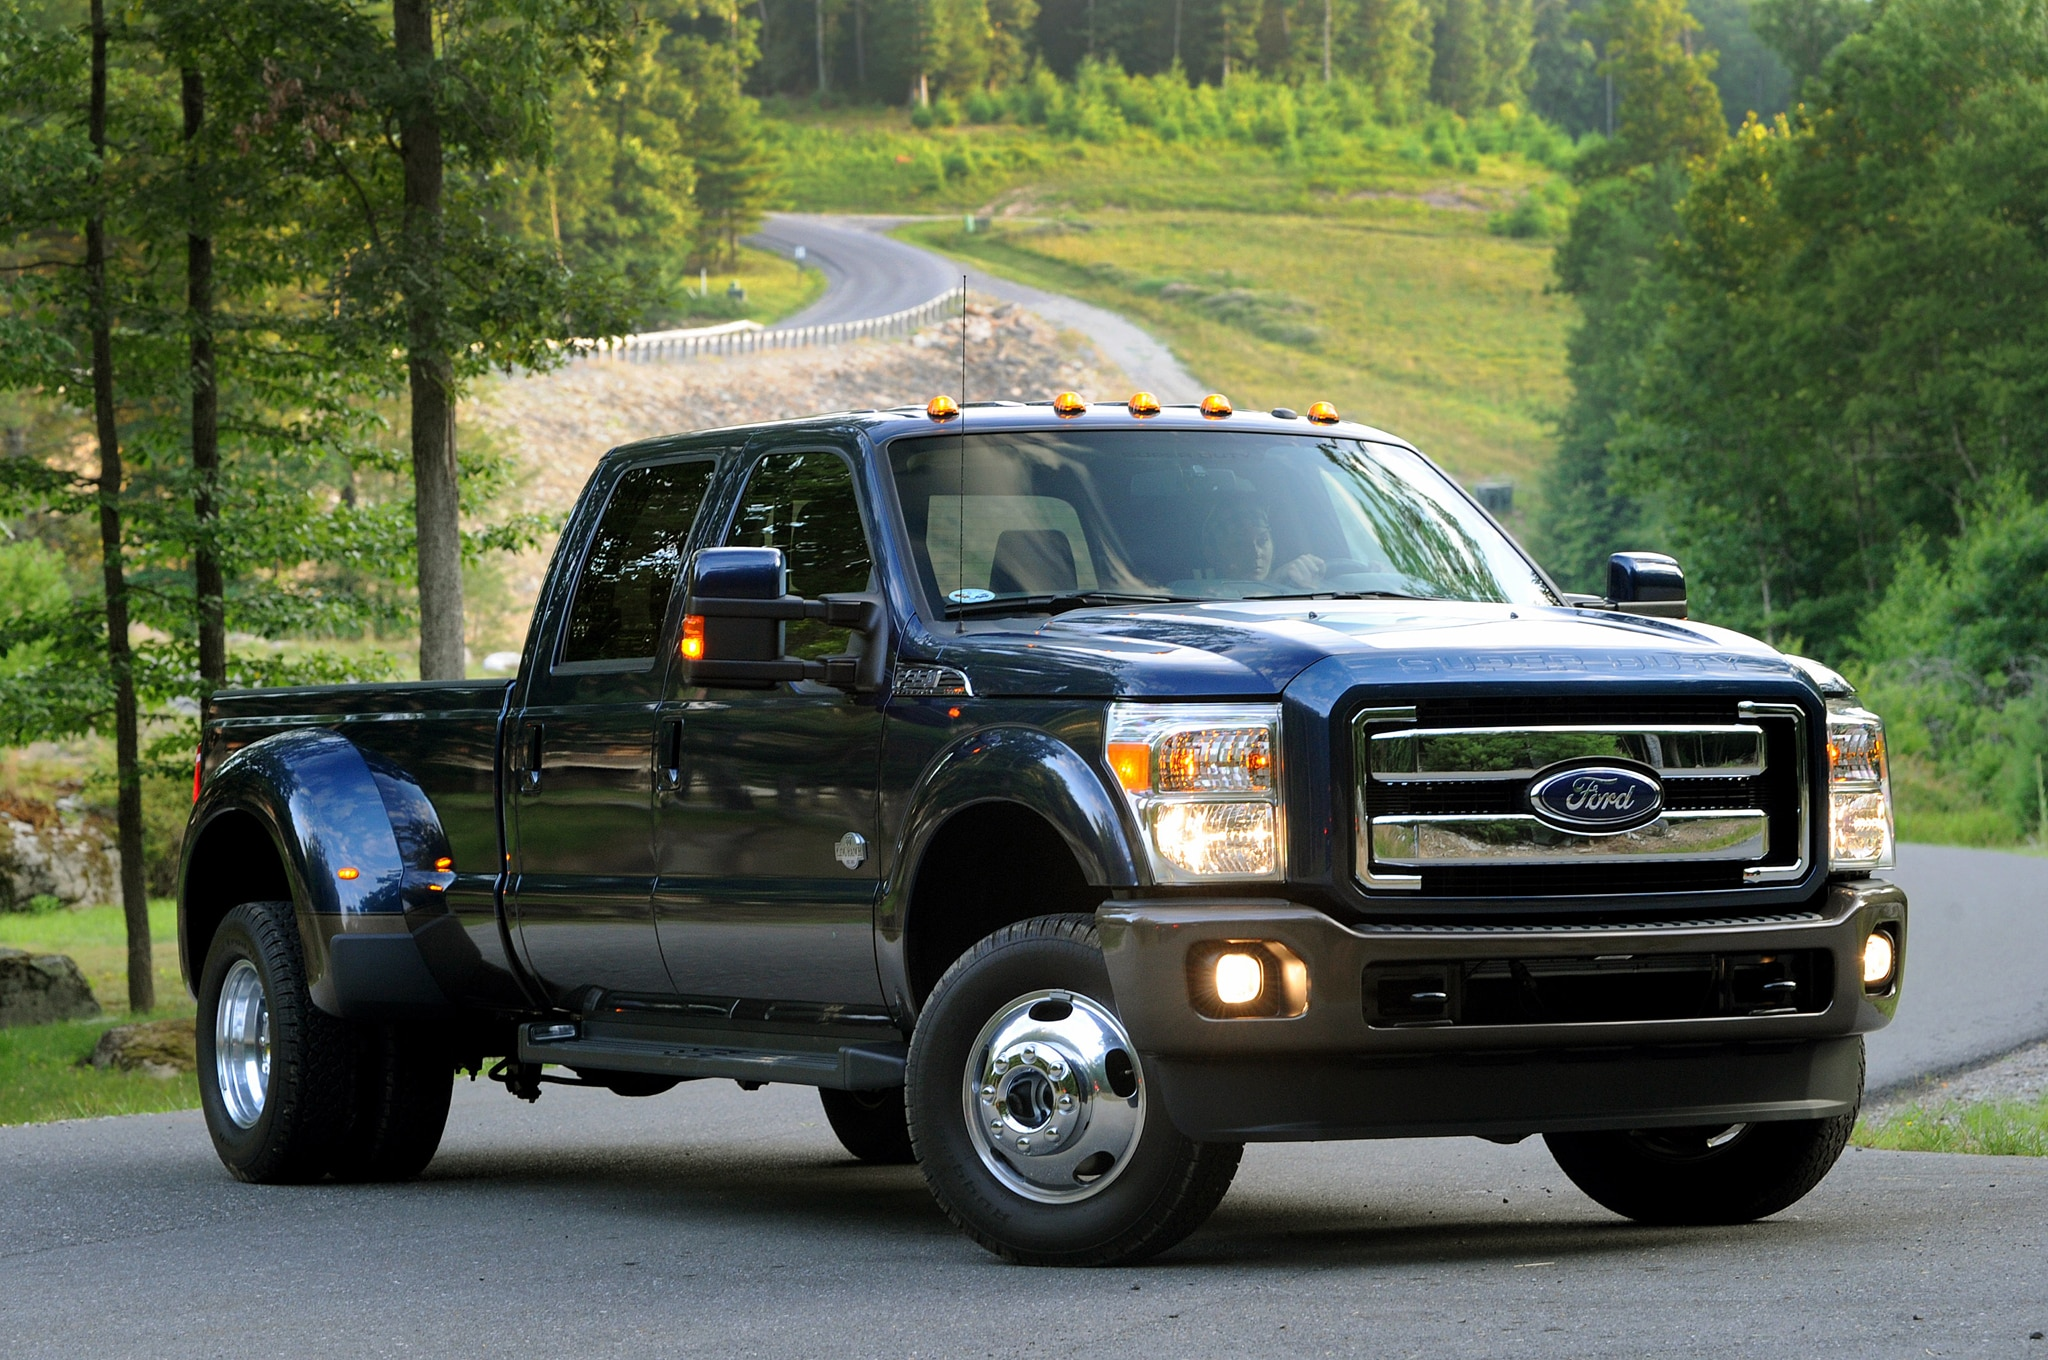 Ford Towing Guide >> 2015 Ford F-Series Super Duty First Look - Automobile Magazine